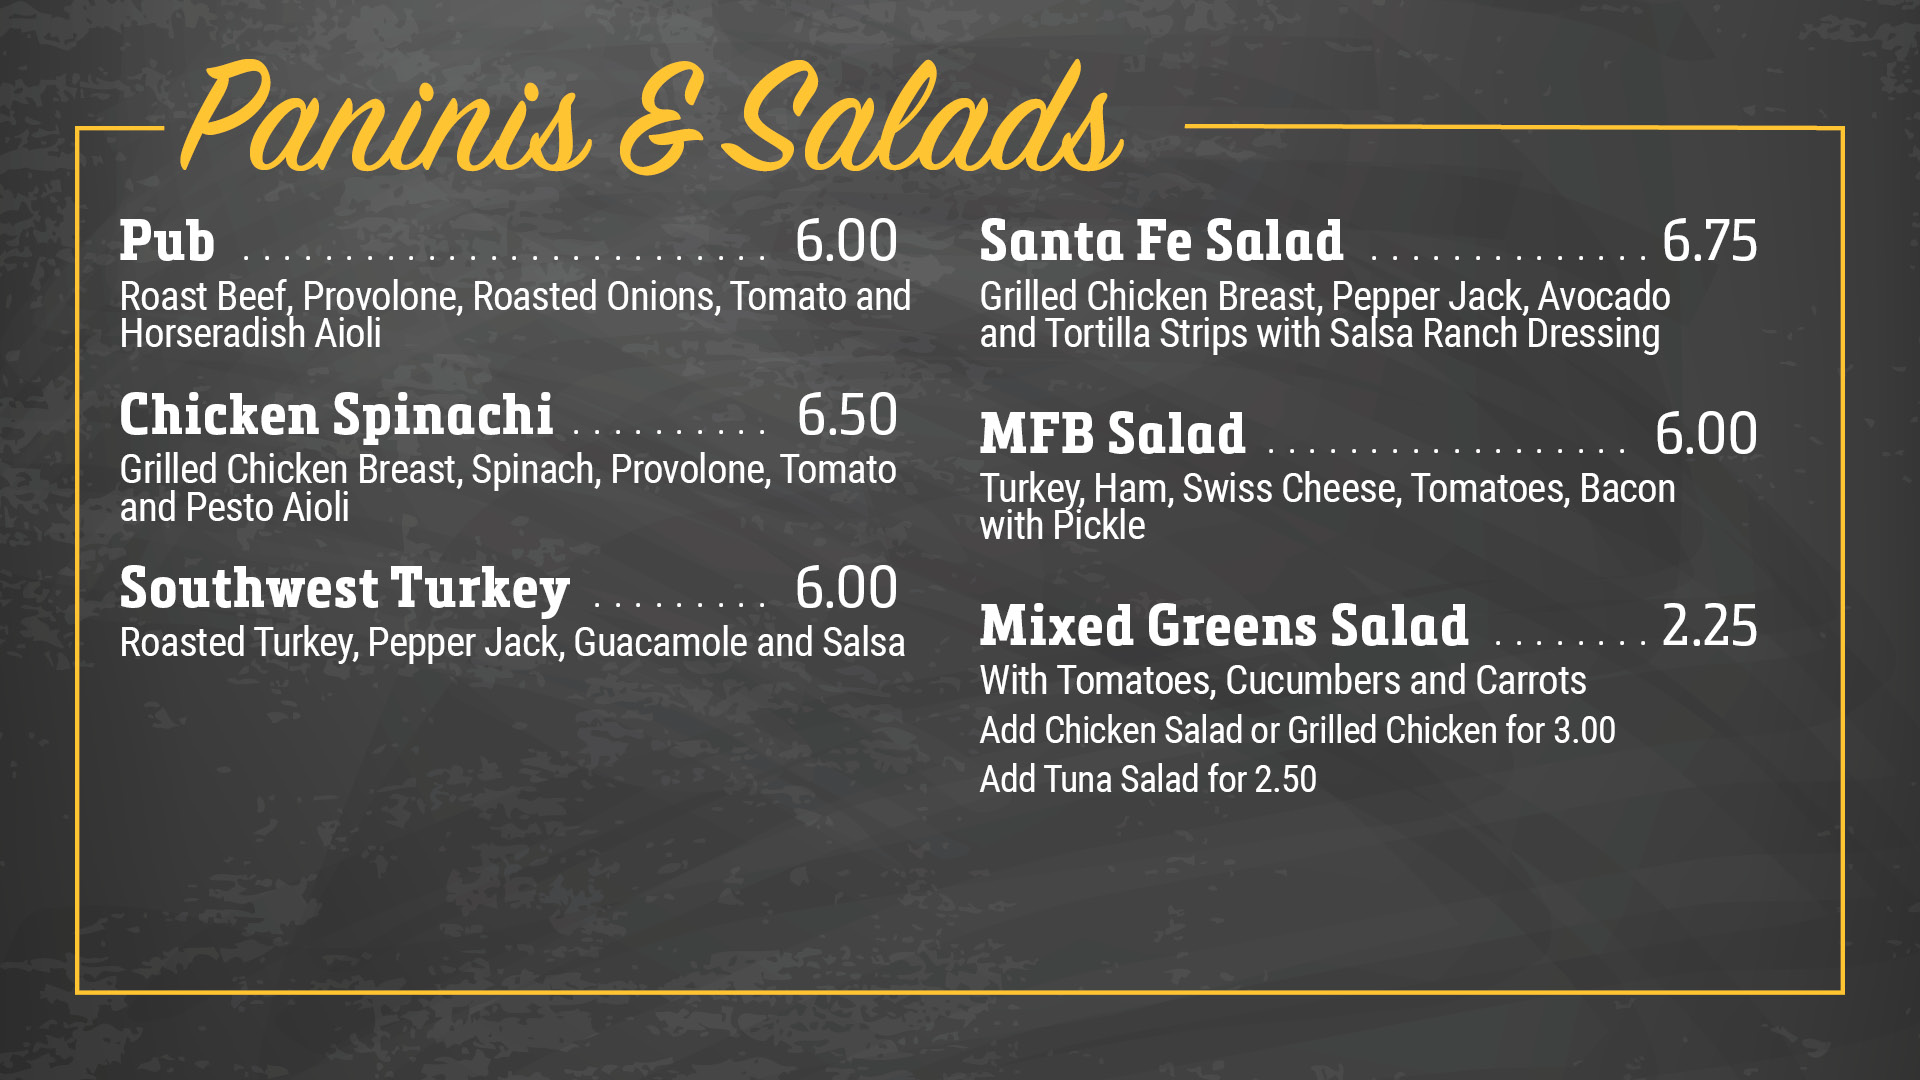 Paninis & Salads Menu